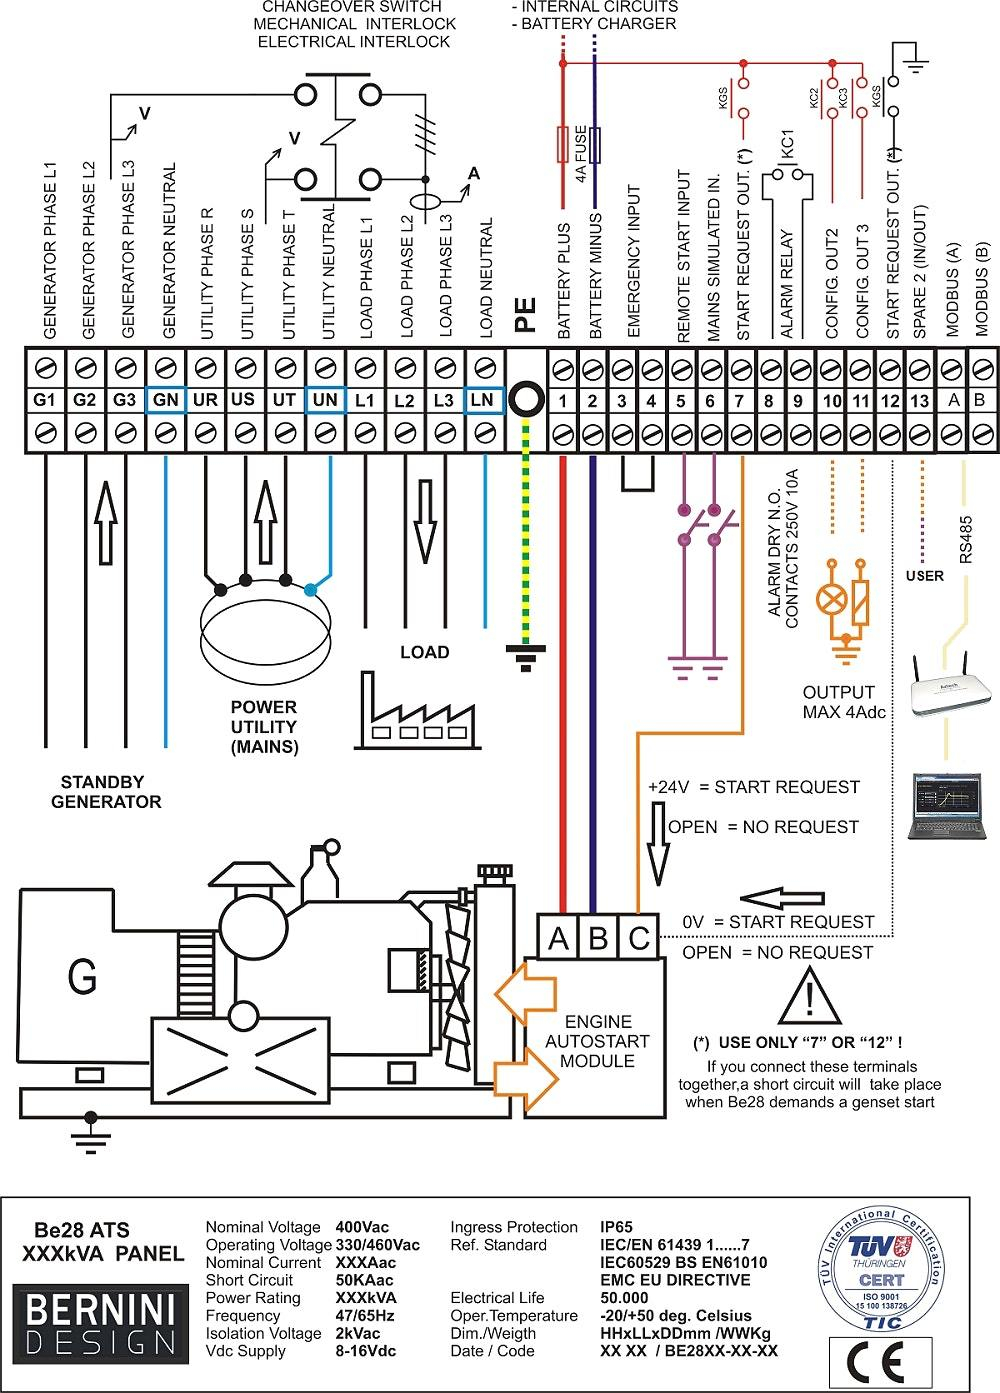 Cummins Transfer Switch Wiring Diagram - Automatic Transfer Switch Wiring Diagram Free Throughout 16f